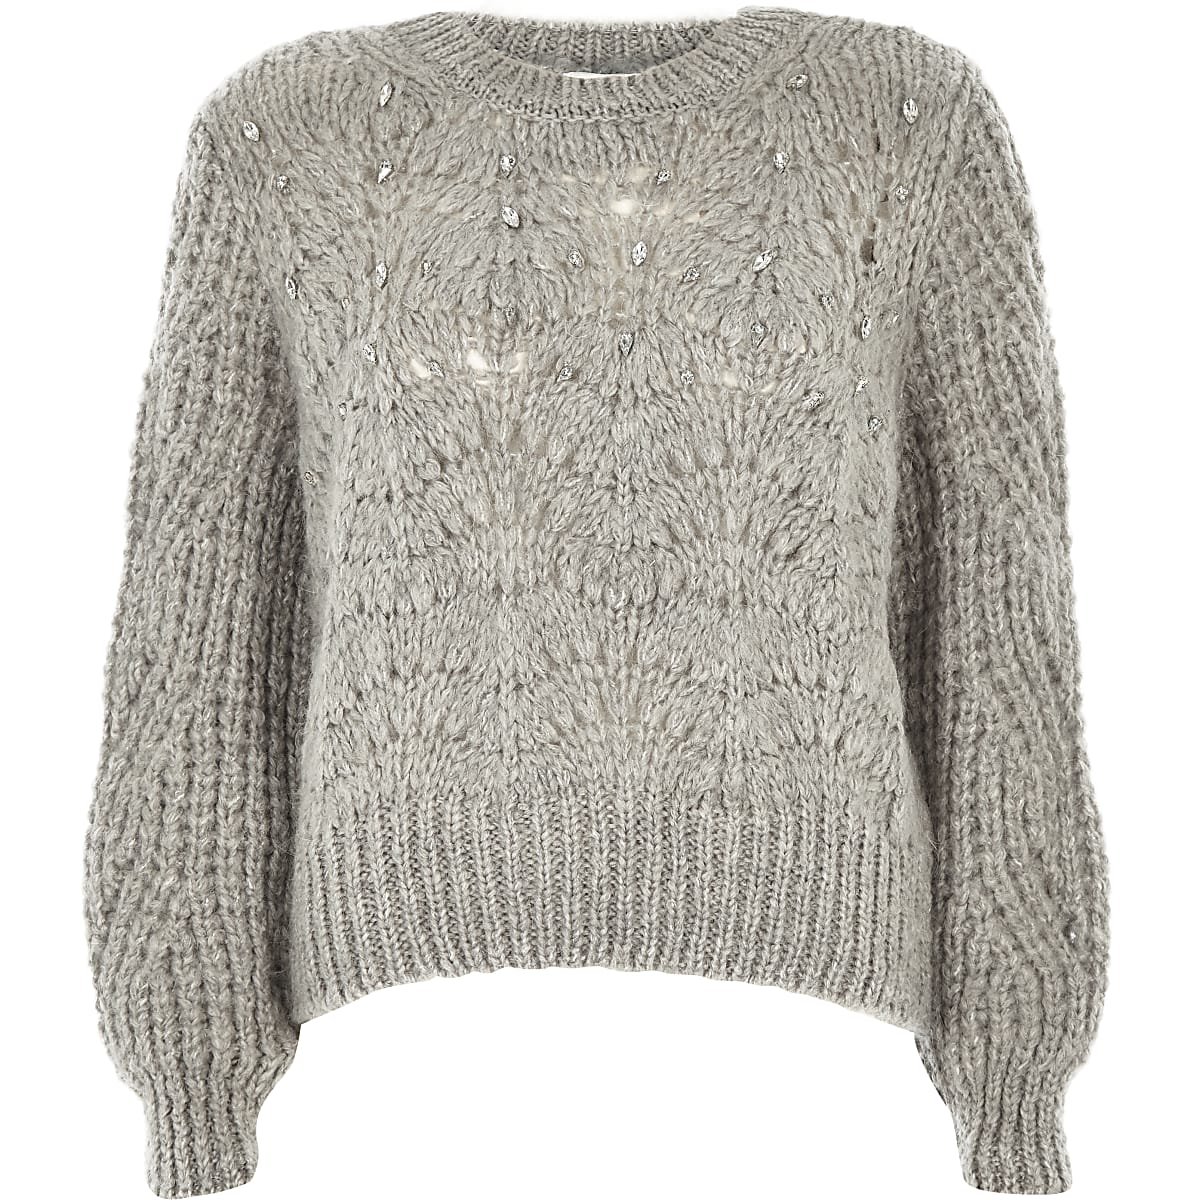 Petite grey knit crew neck embellished jumper